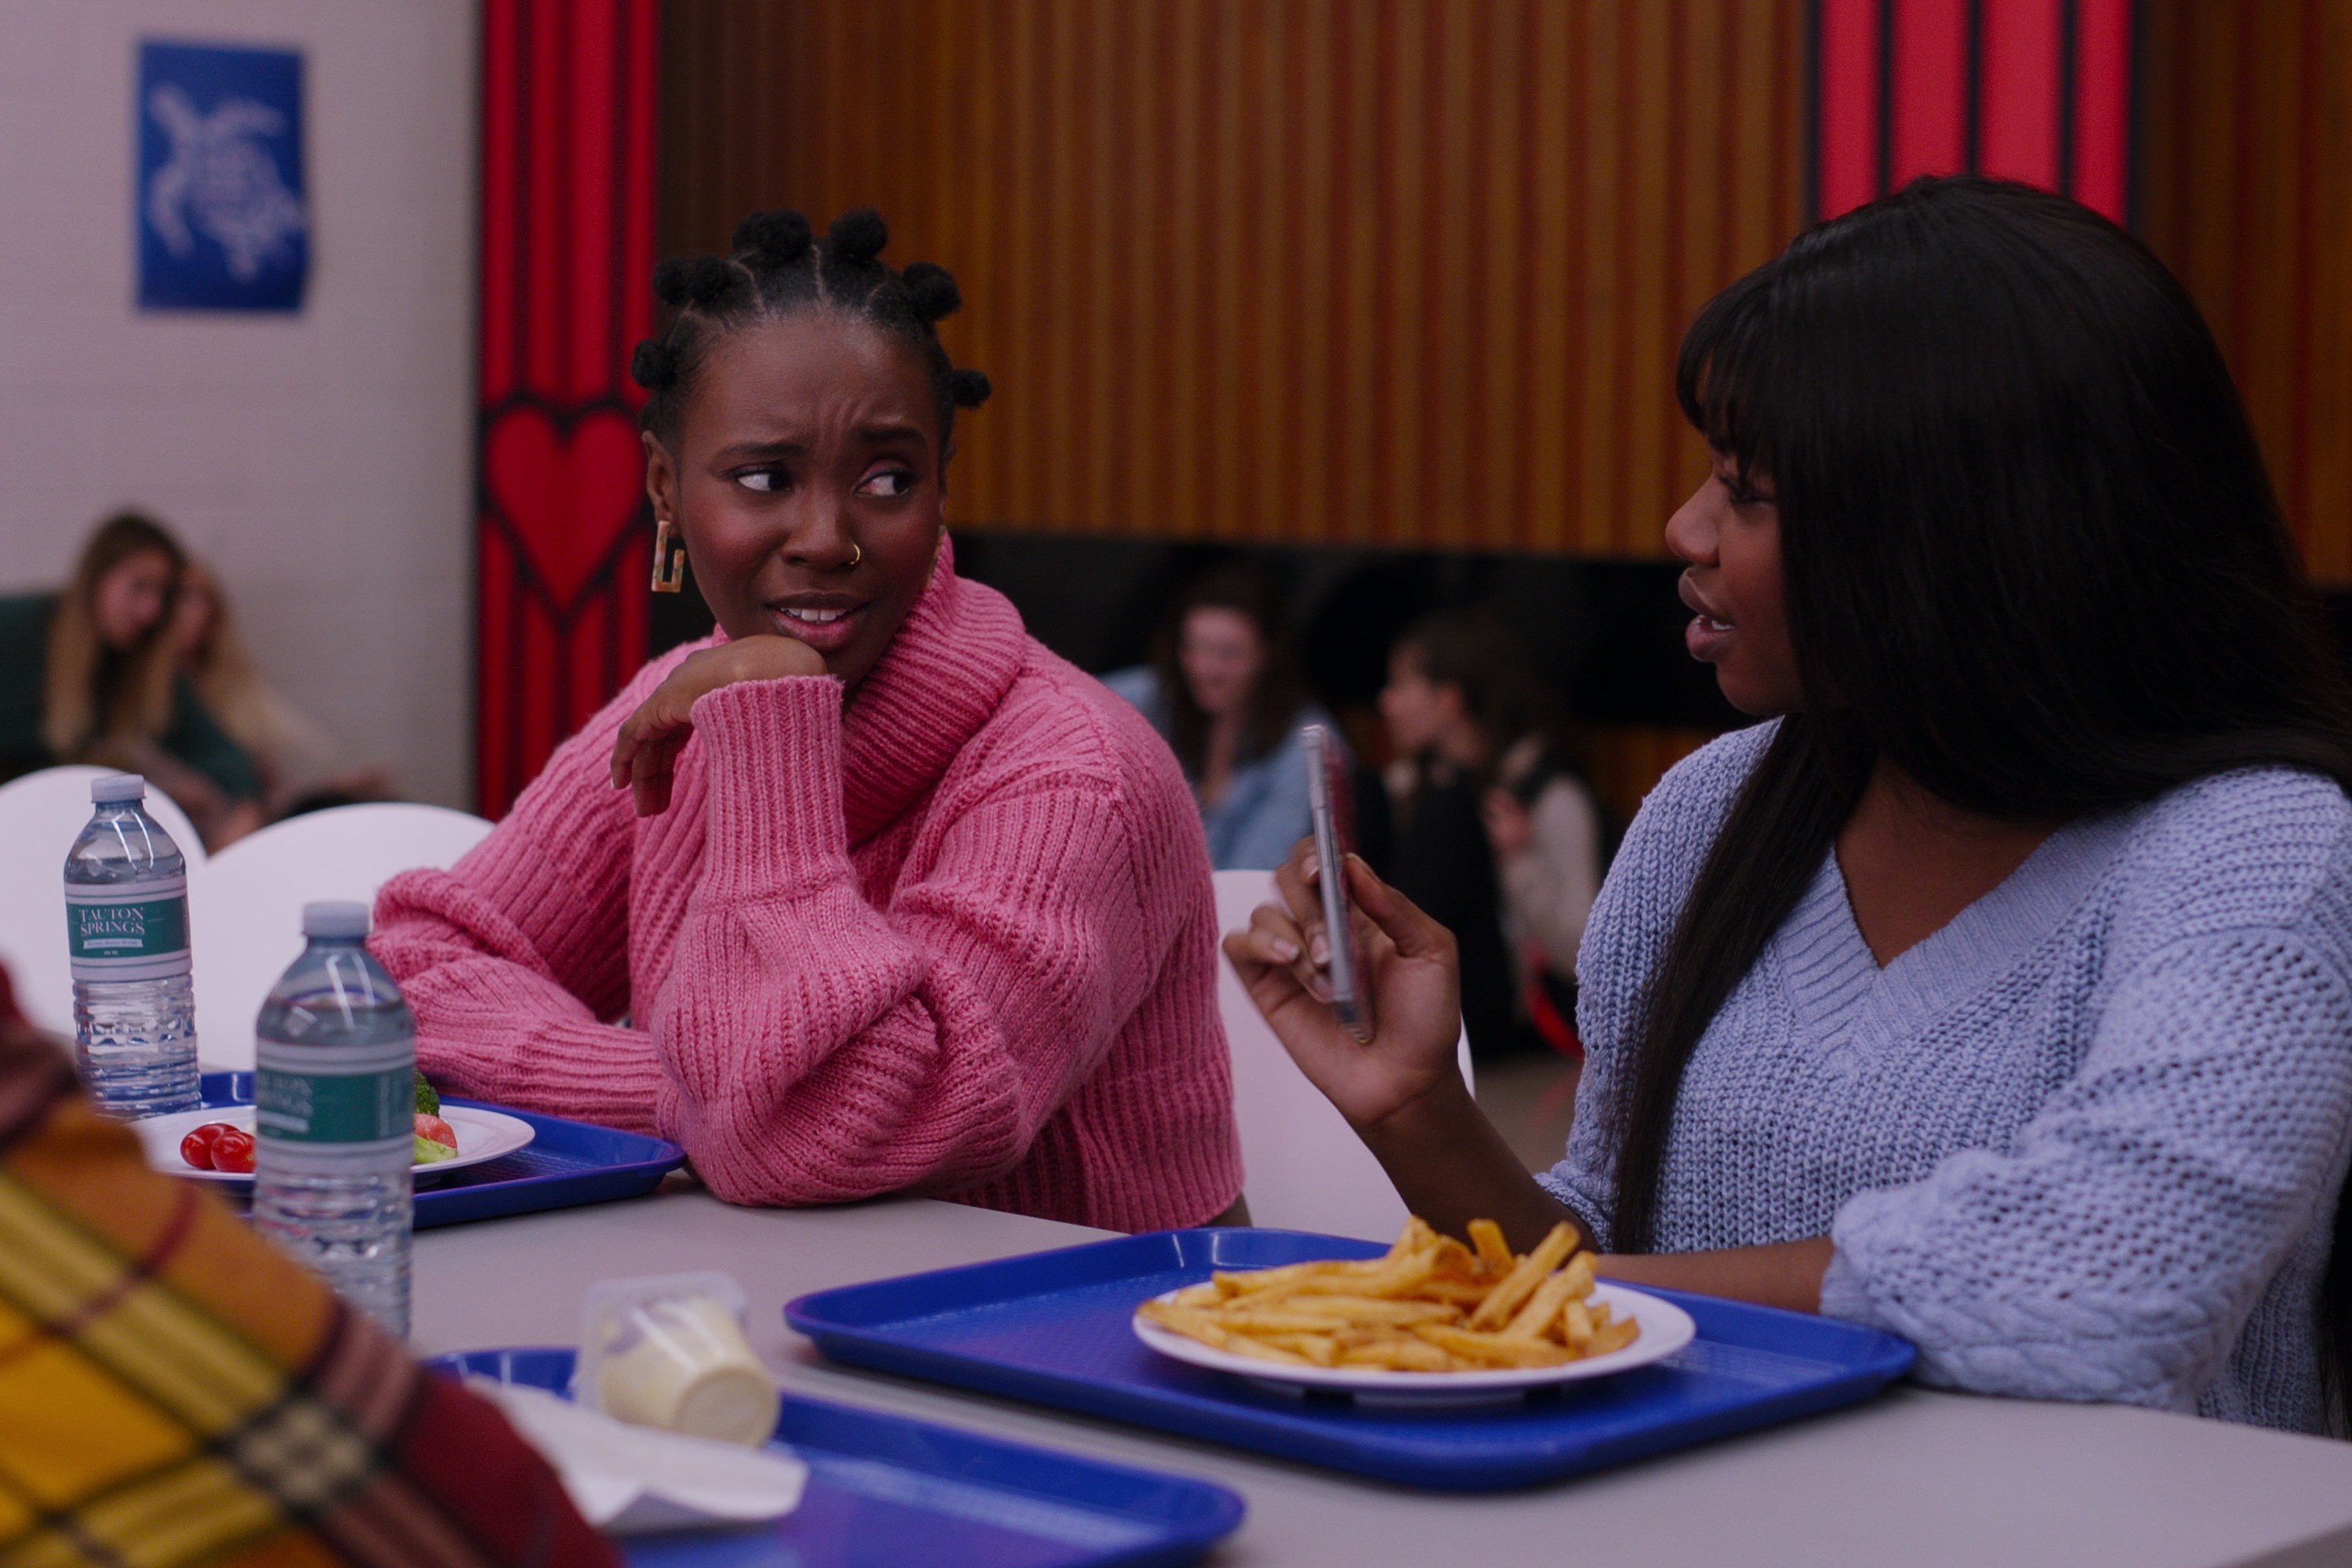 Bracia talks to her friend in the cafeteria